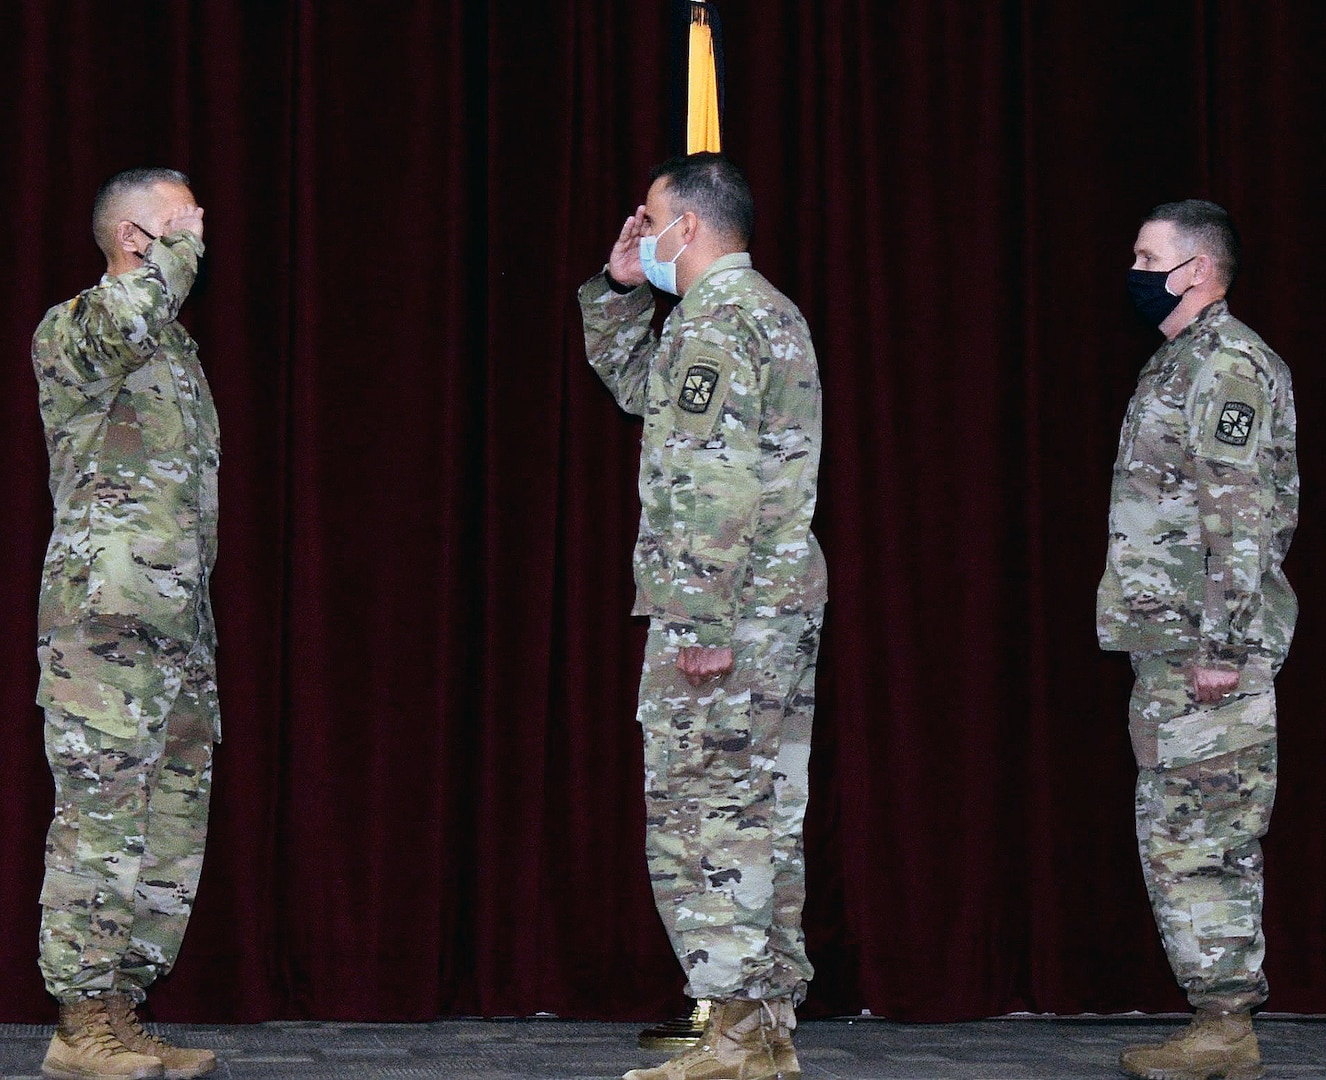 (From left) Incoming Command Sgt. Maj. Jose M. Salas, 5th Brigade, U.S. Army Cadet Command, salutes Col. Mark A. Olsen, 5th Brigade commander, as outgoing Command Sgt. Maj. George B. Bunn looks on during achange of responsibility ceremony at Joint Base San Antonio-Fort Sam Houston Dec. 18.